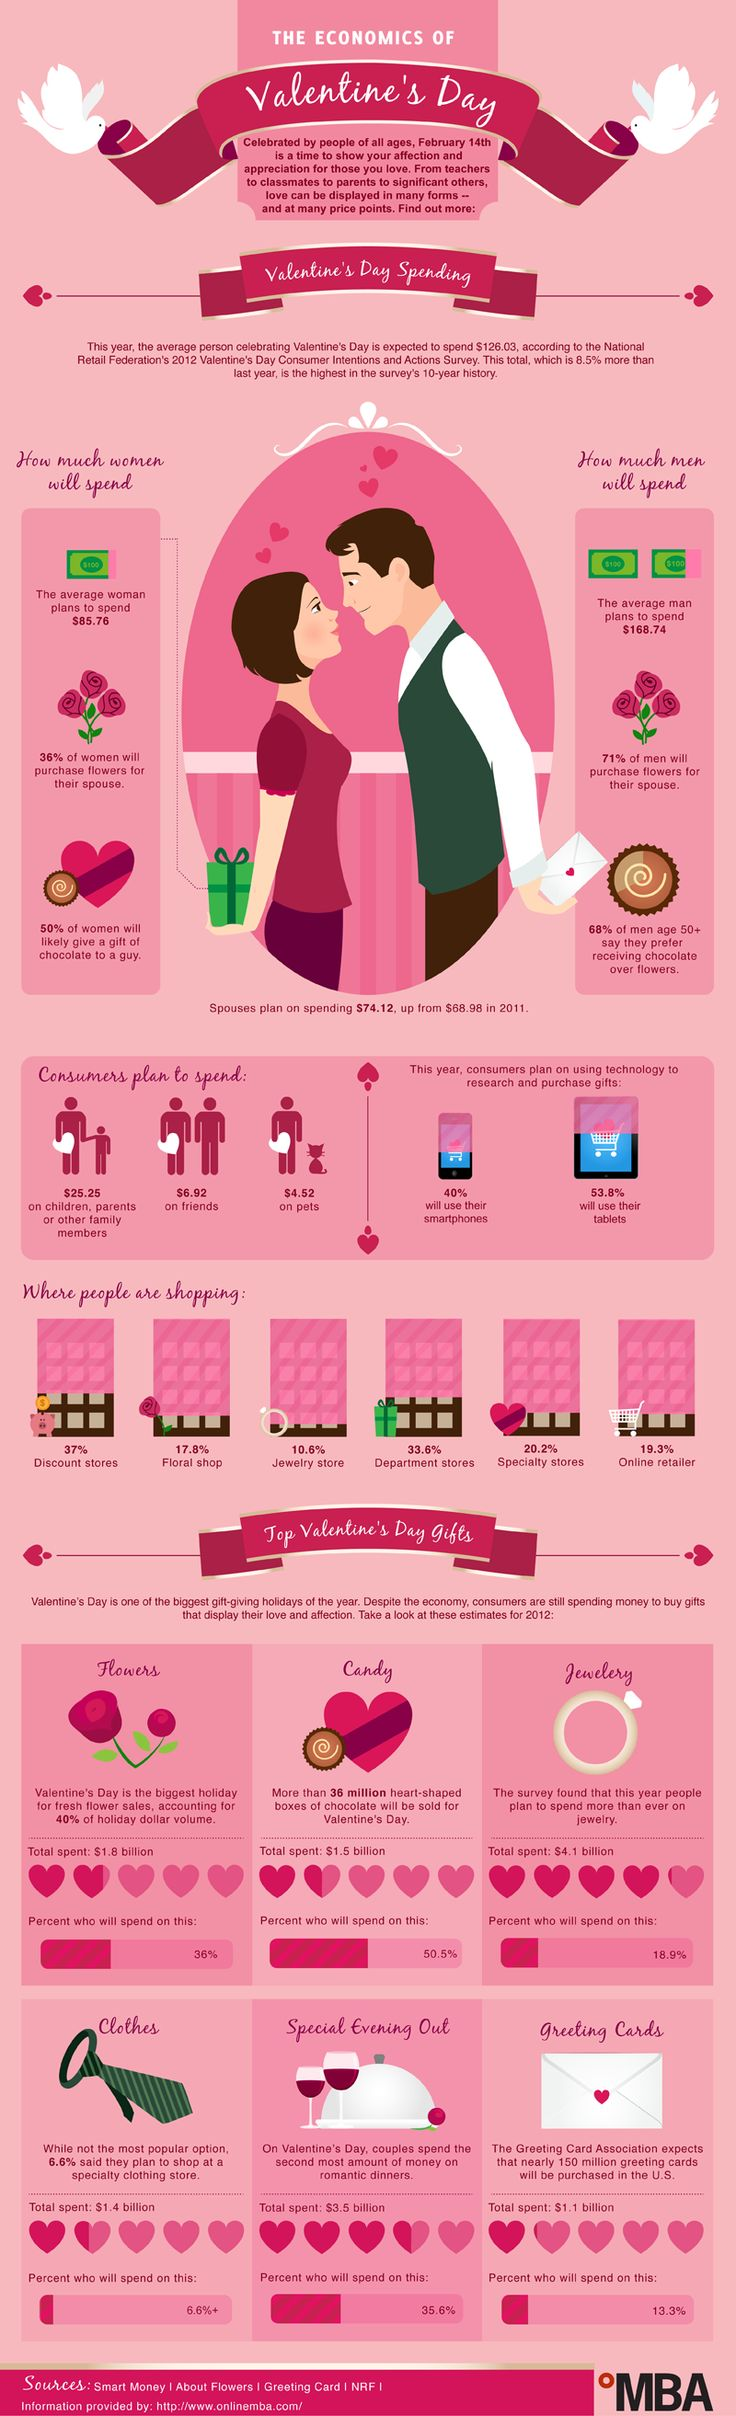 Valentines Day Trends and Statistics